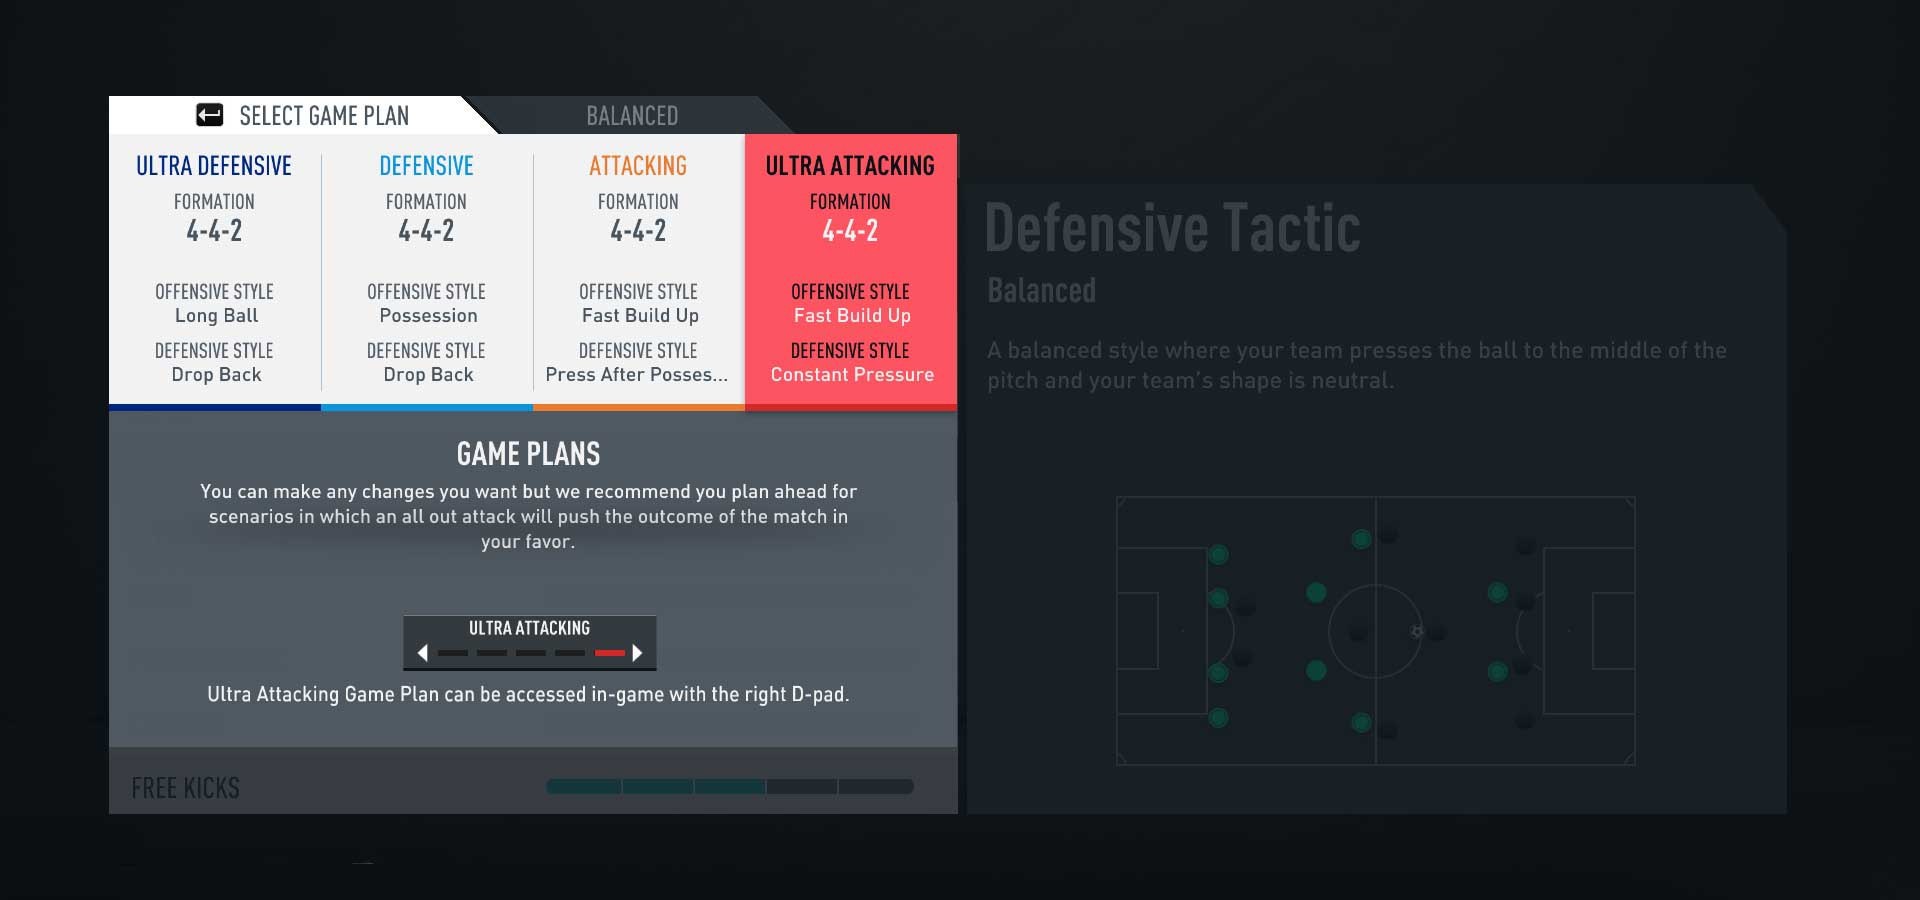 FIFA 20 Dynamic Tactics Guide